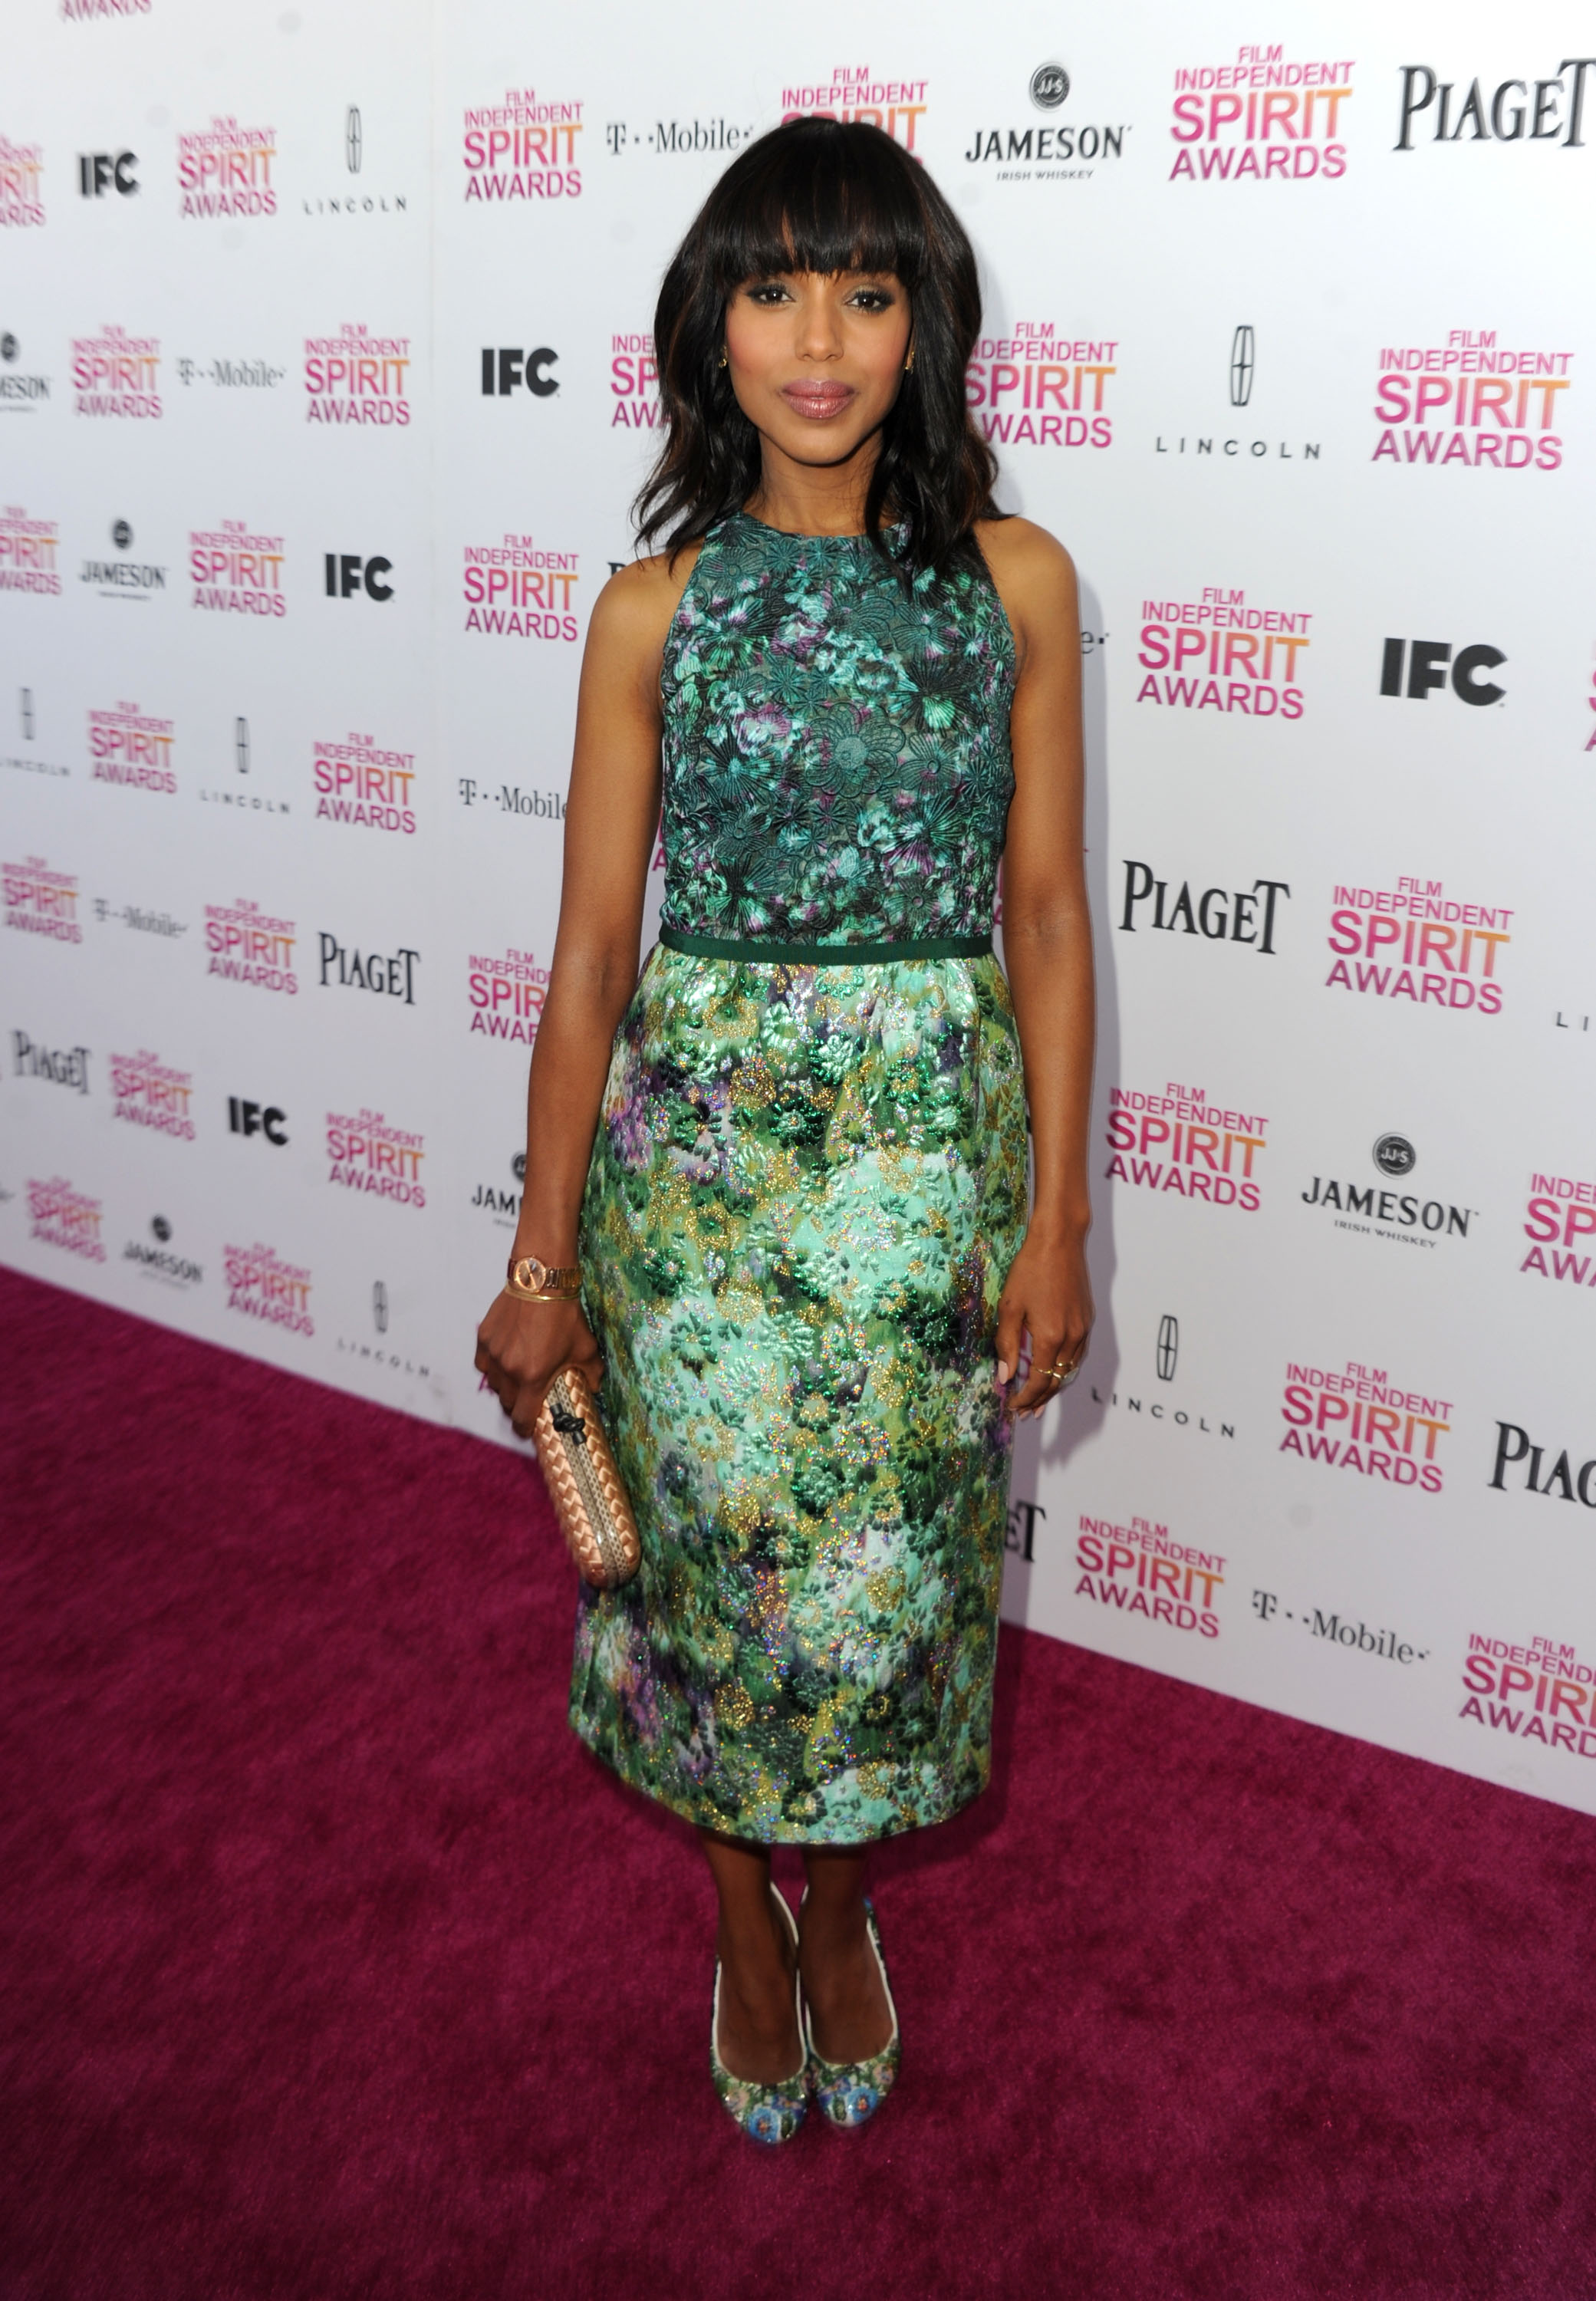 Kerry Washington on the red carpet at the Spirit Awards 2013.